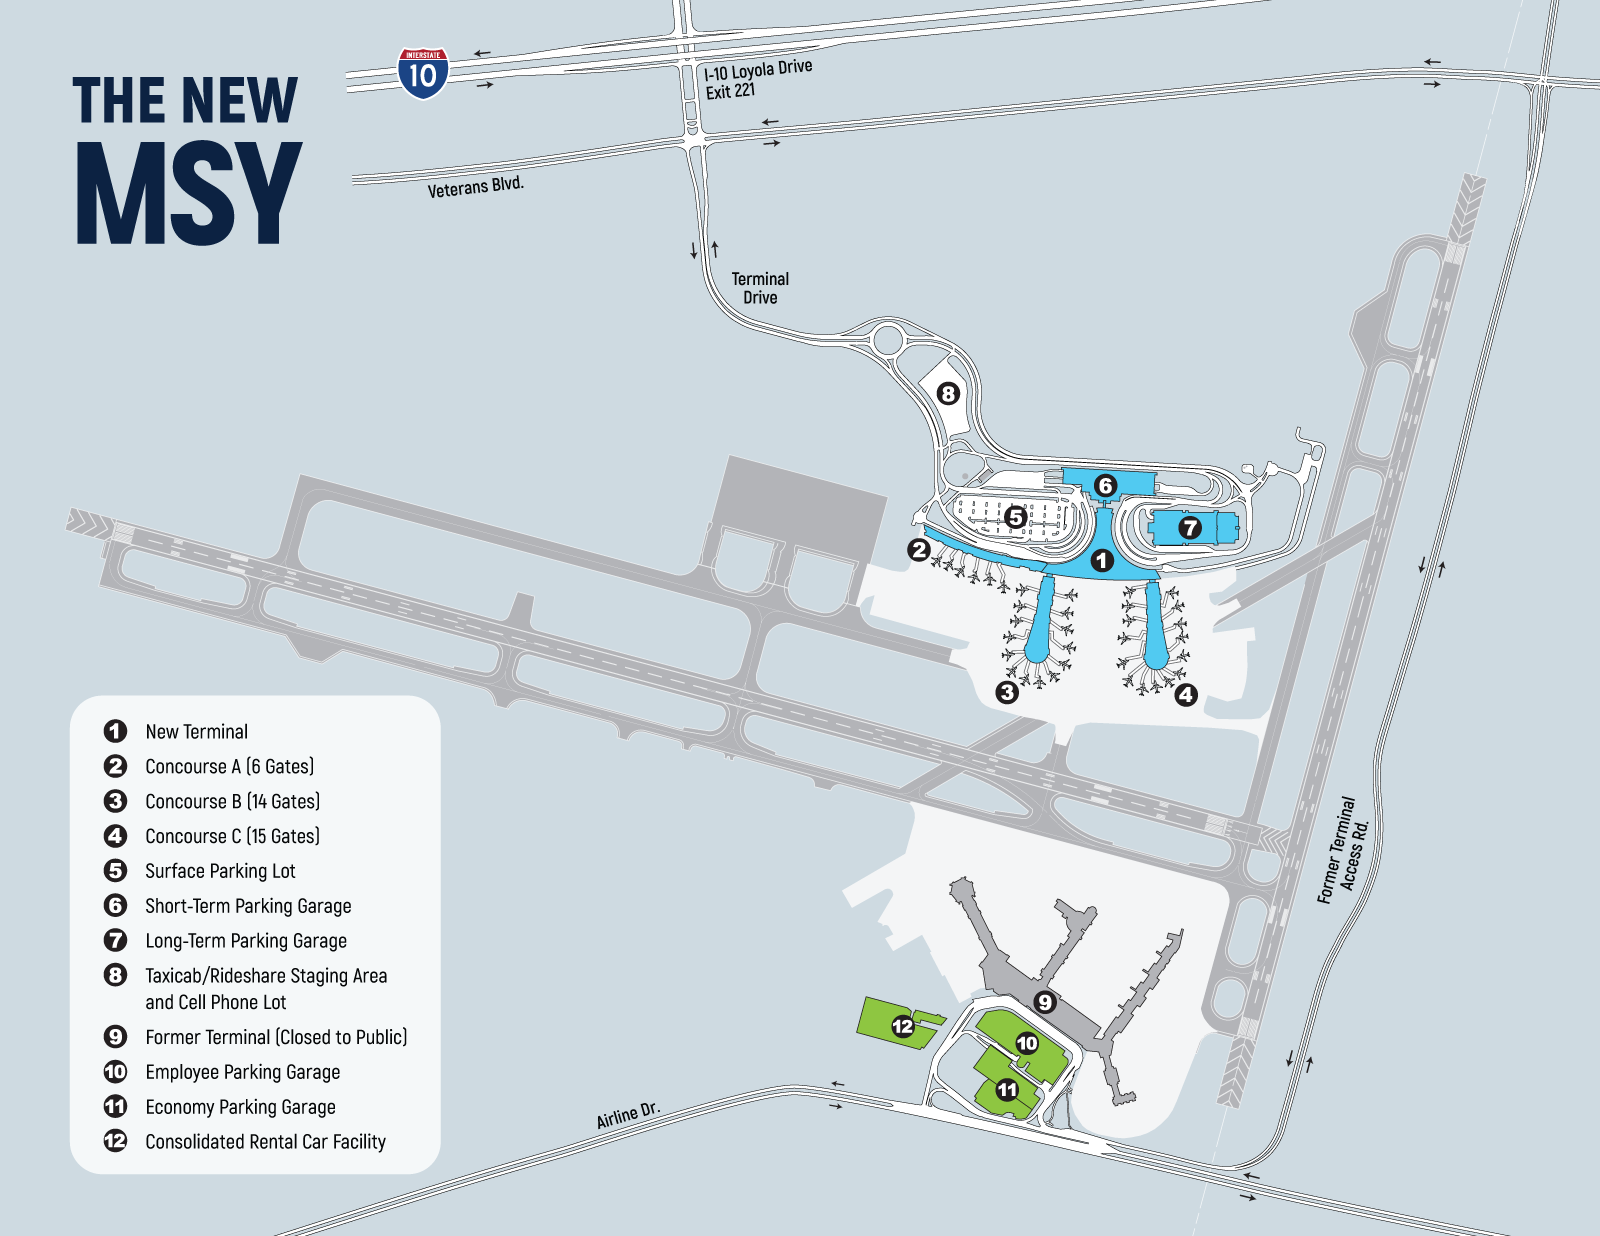 MSY Access & Parking Map